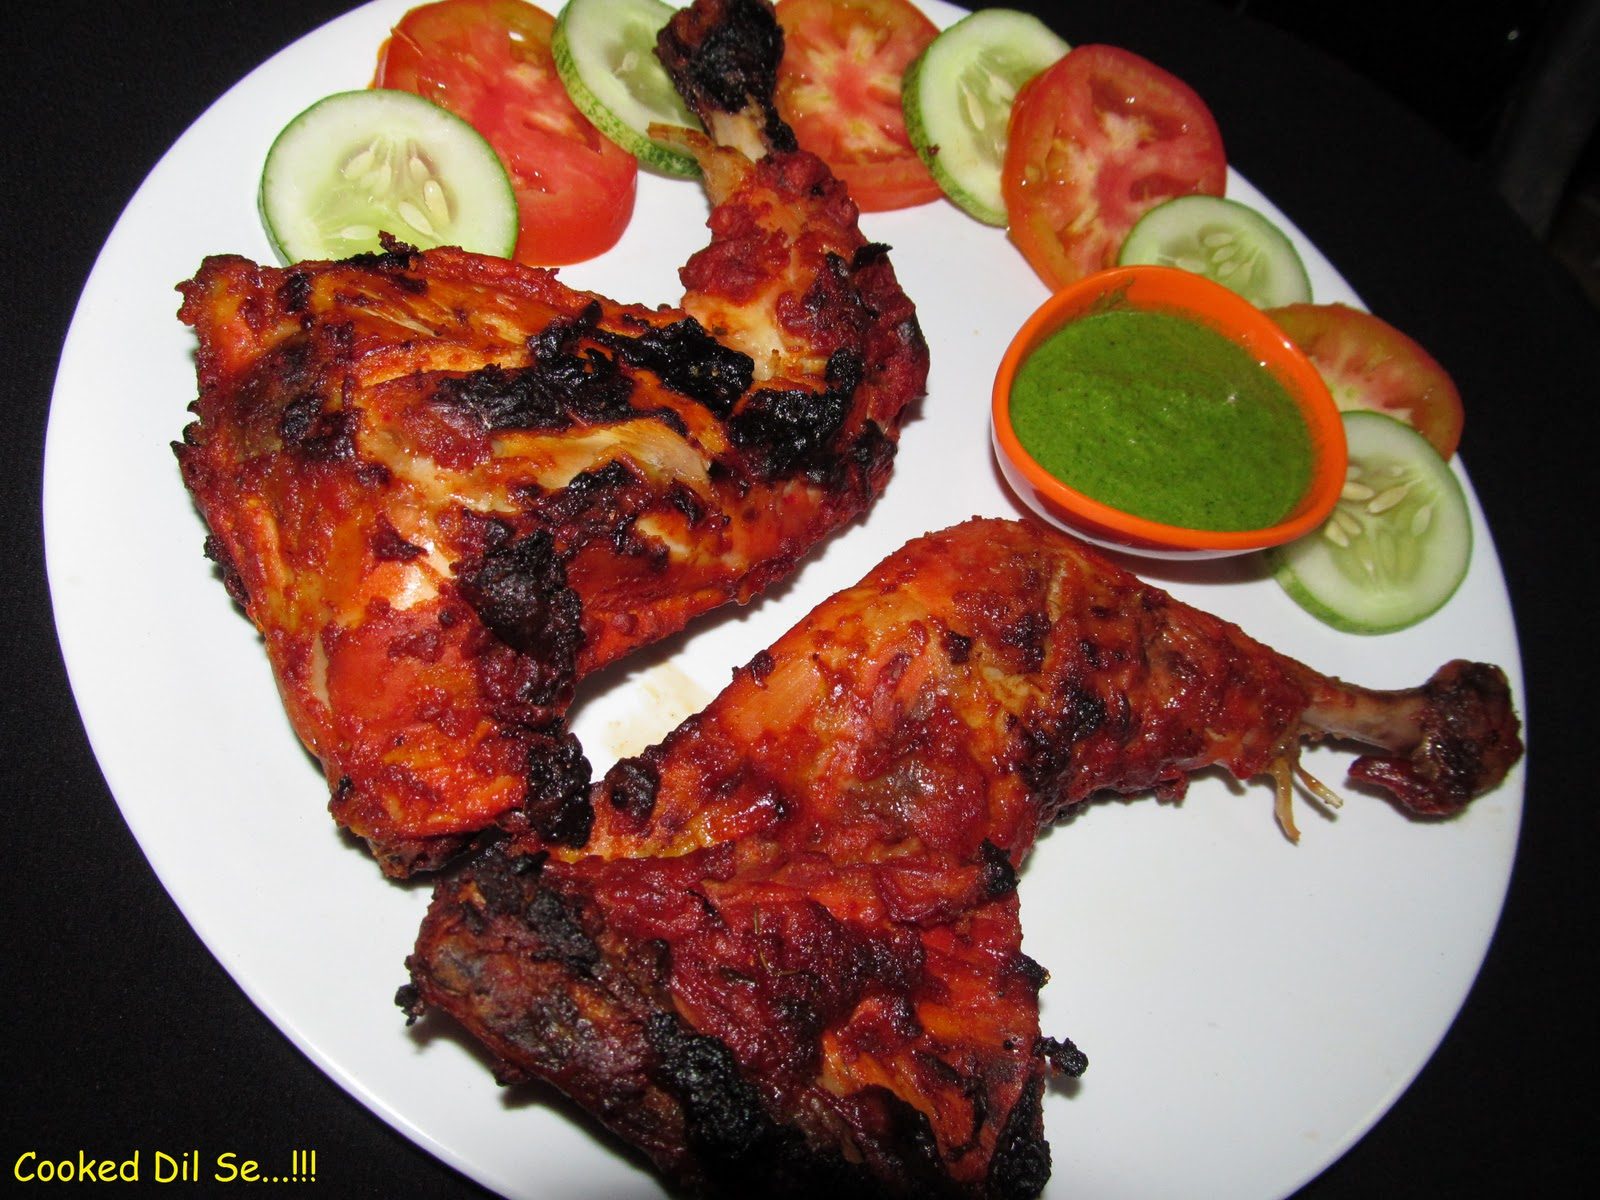 chicken tandoori one of the most popular dish in non veg tandoori ...